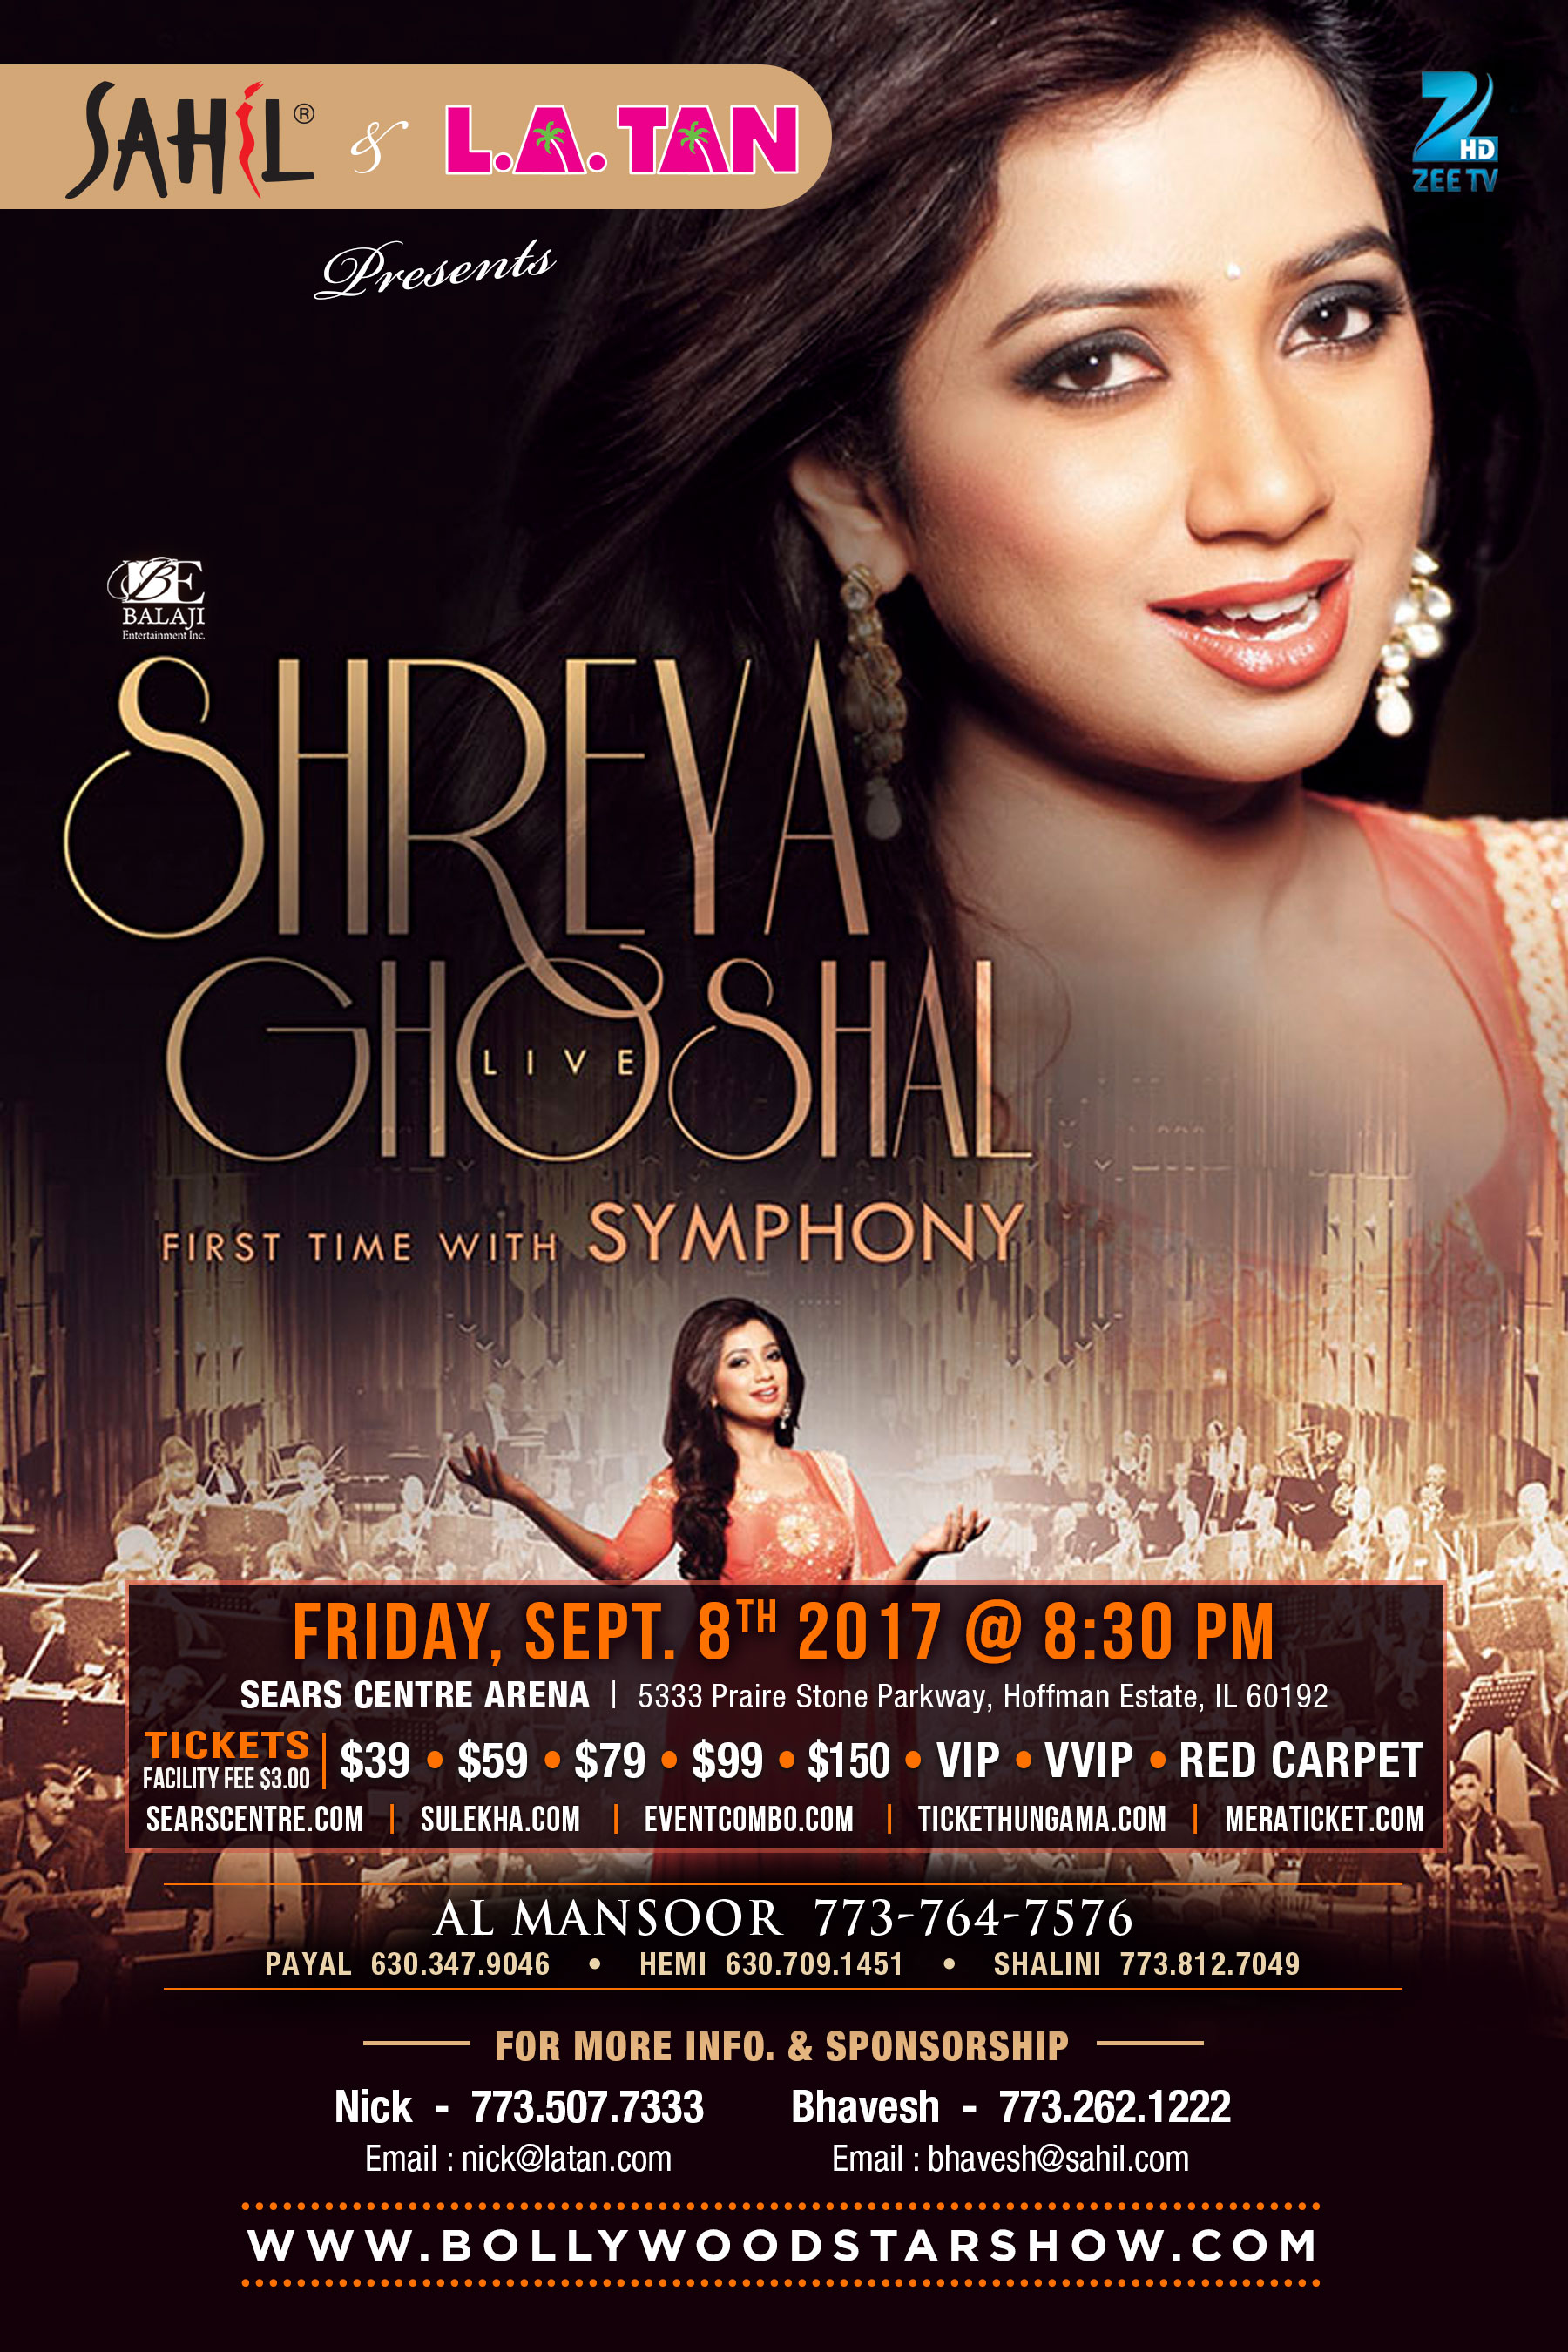 Buy Tickets for Shreya Ghoshal Live in Concert in Chicago 2017 with Symphony